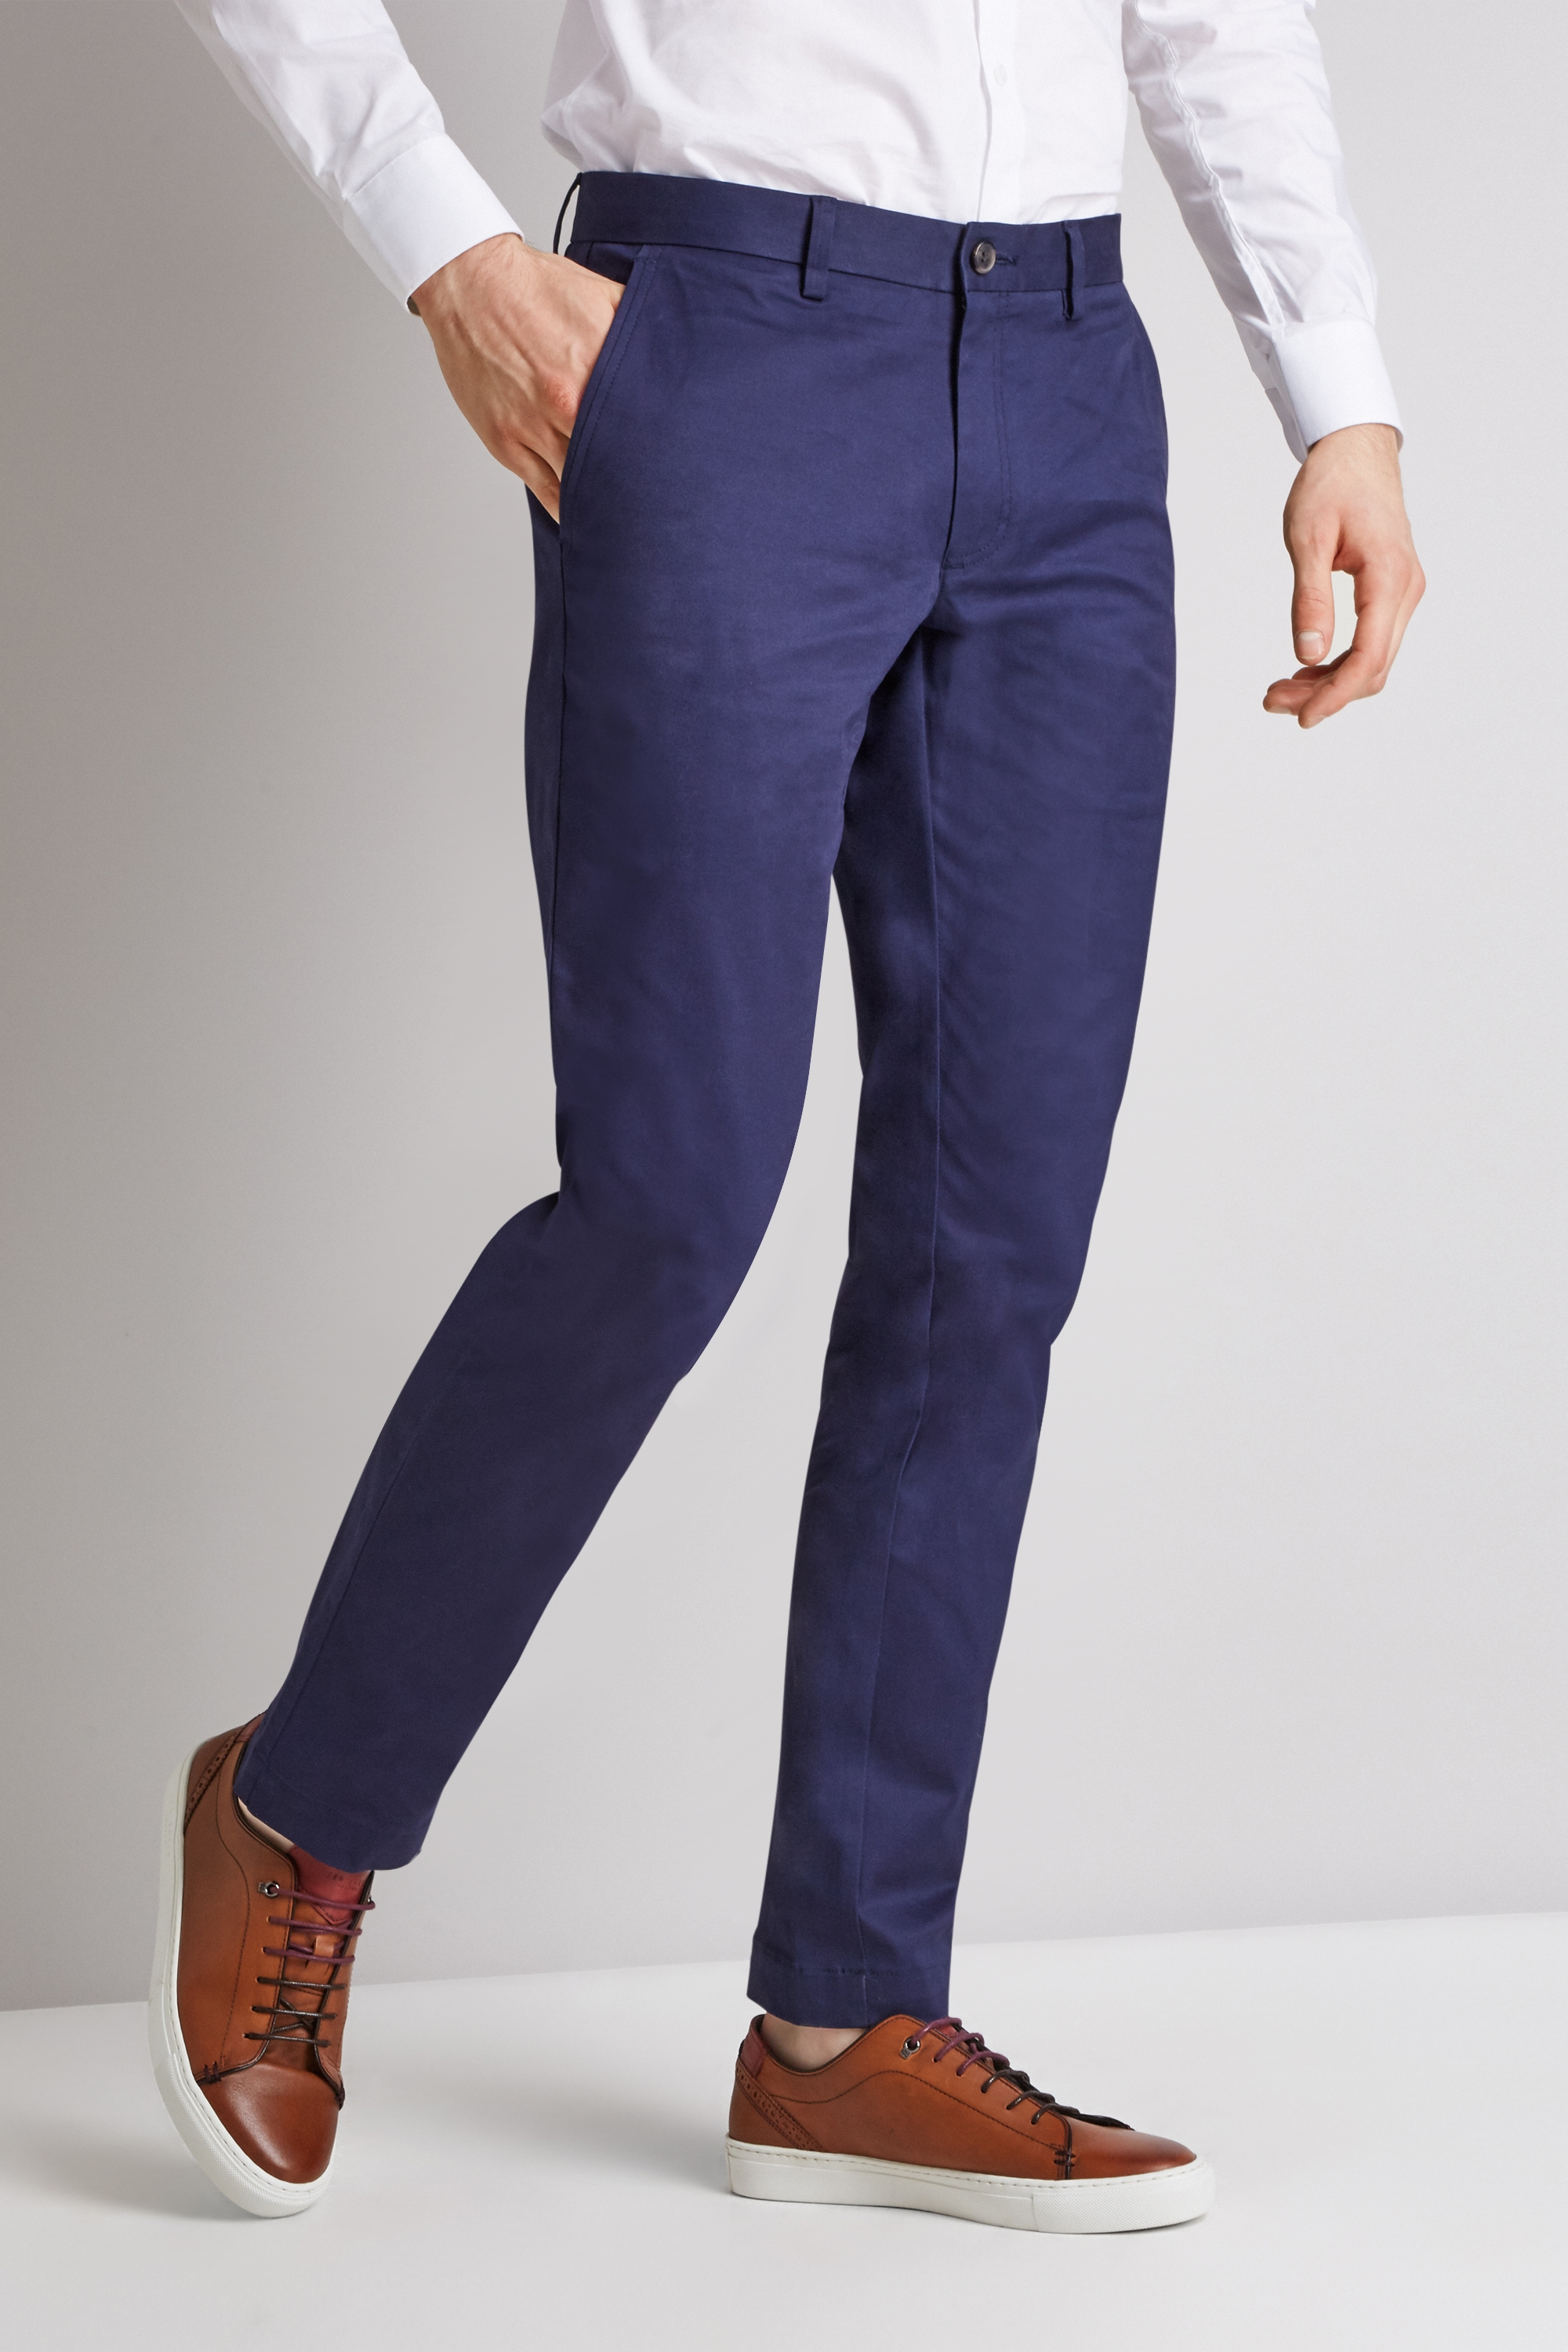 Moss-London-Mens-Chinos-Slim-Fit-Navy-Blue-